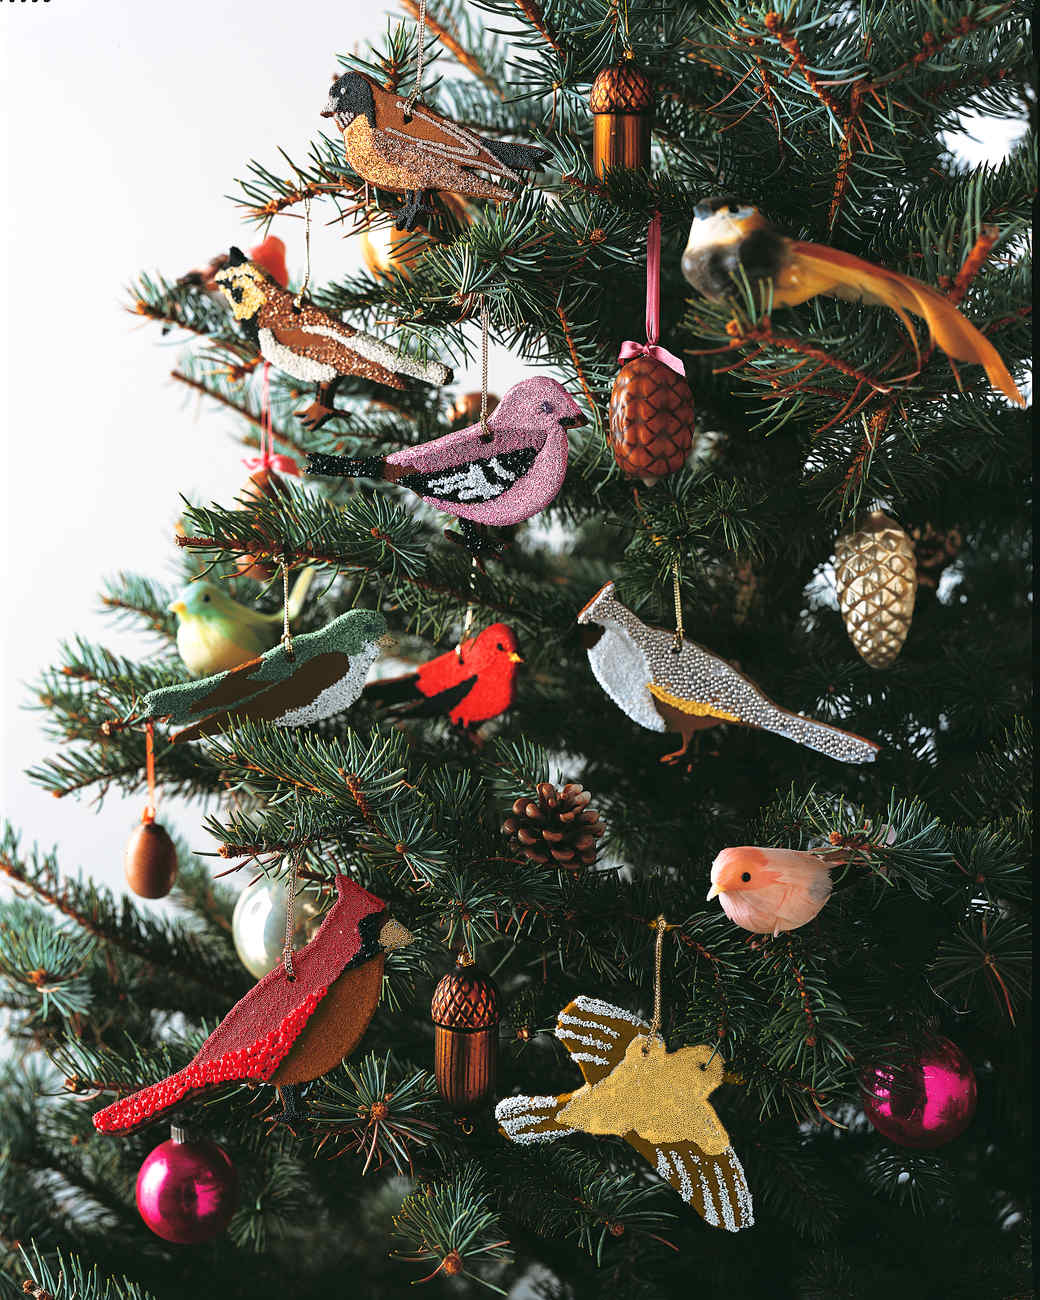 cinnamon bird ornament - Bird Christmas Tree Decorations